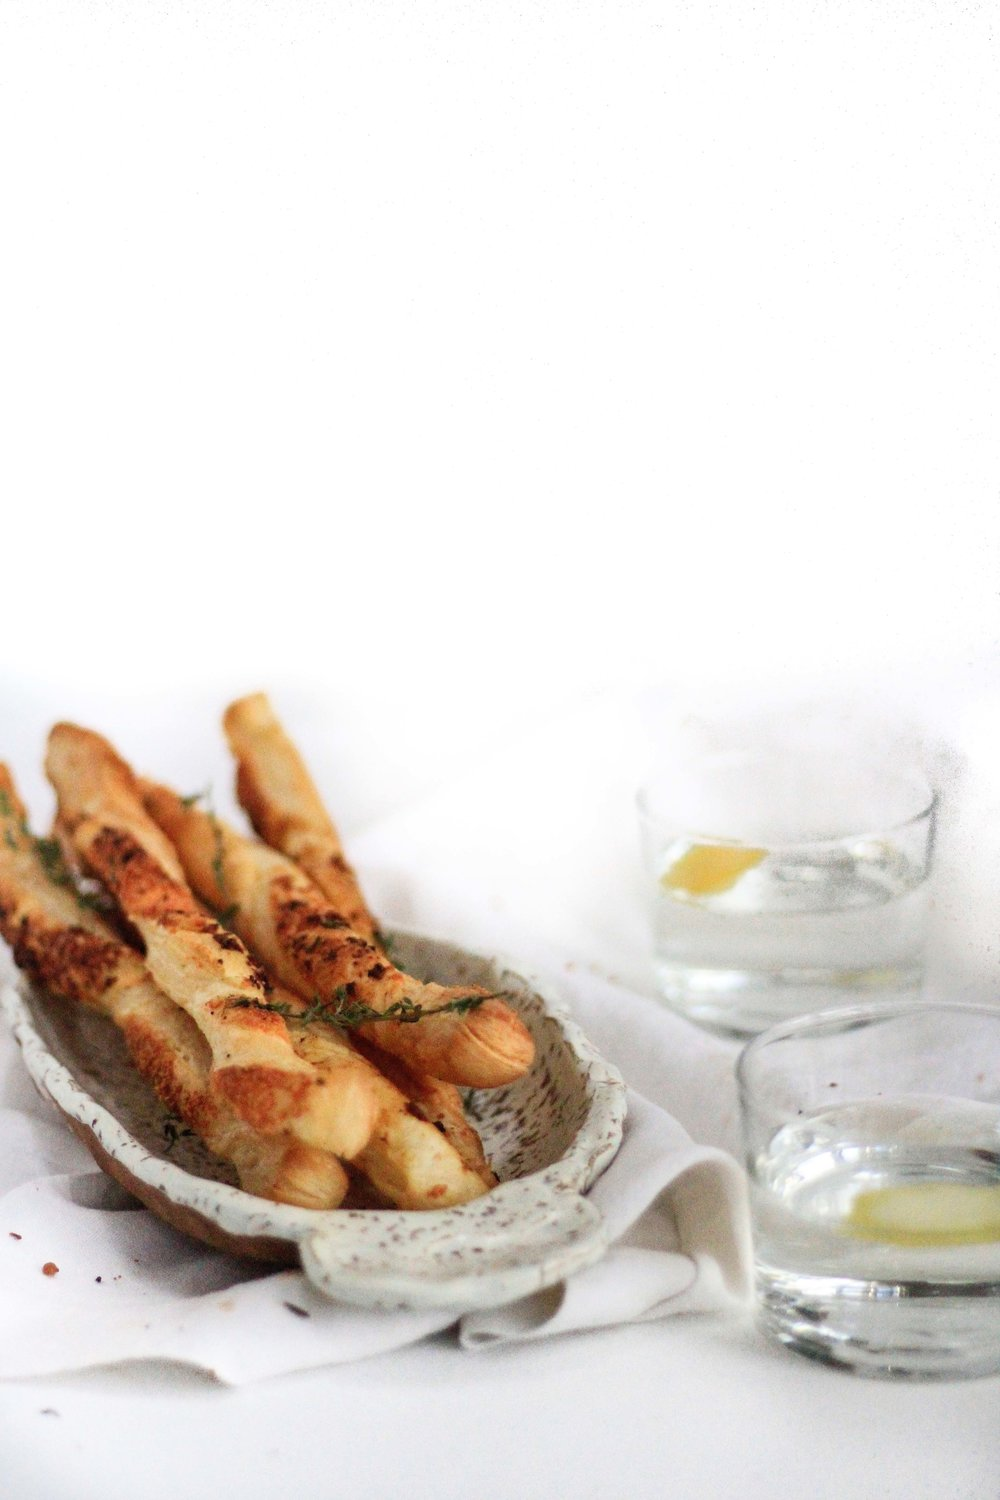 Garlic pastry twists